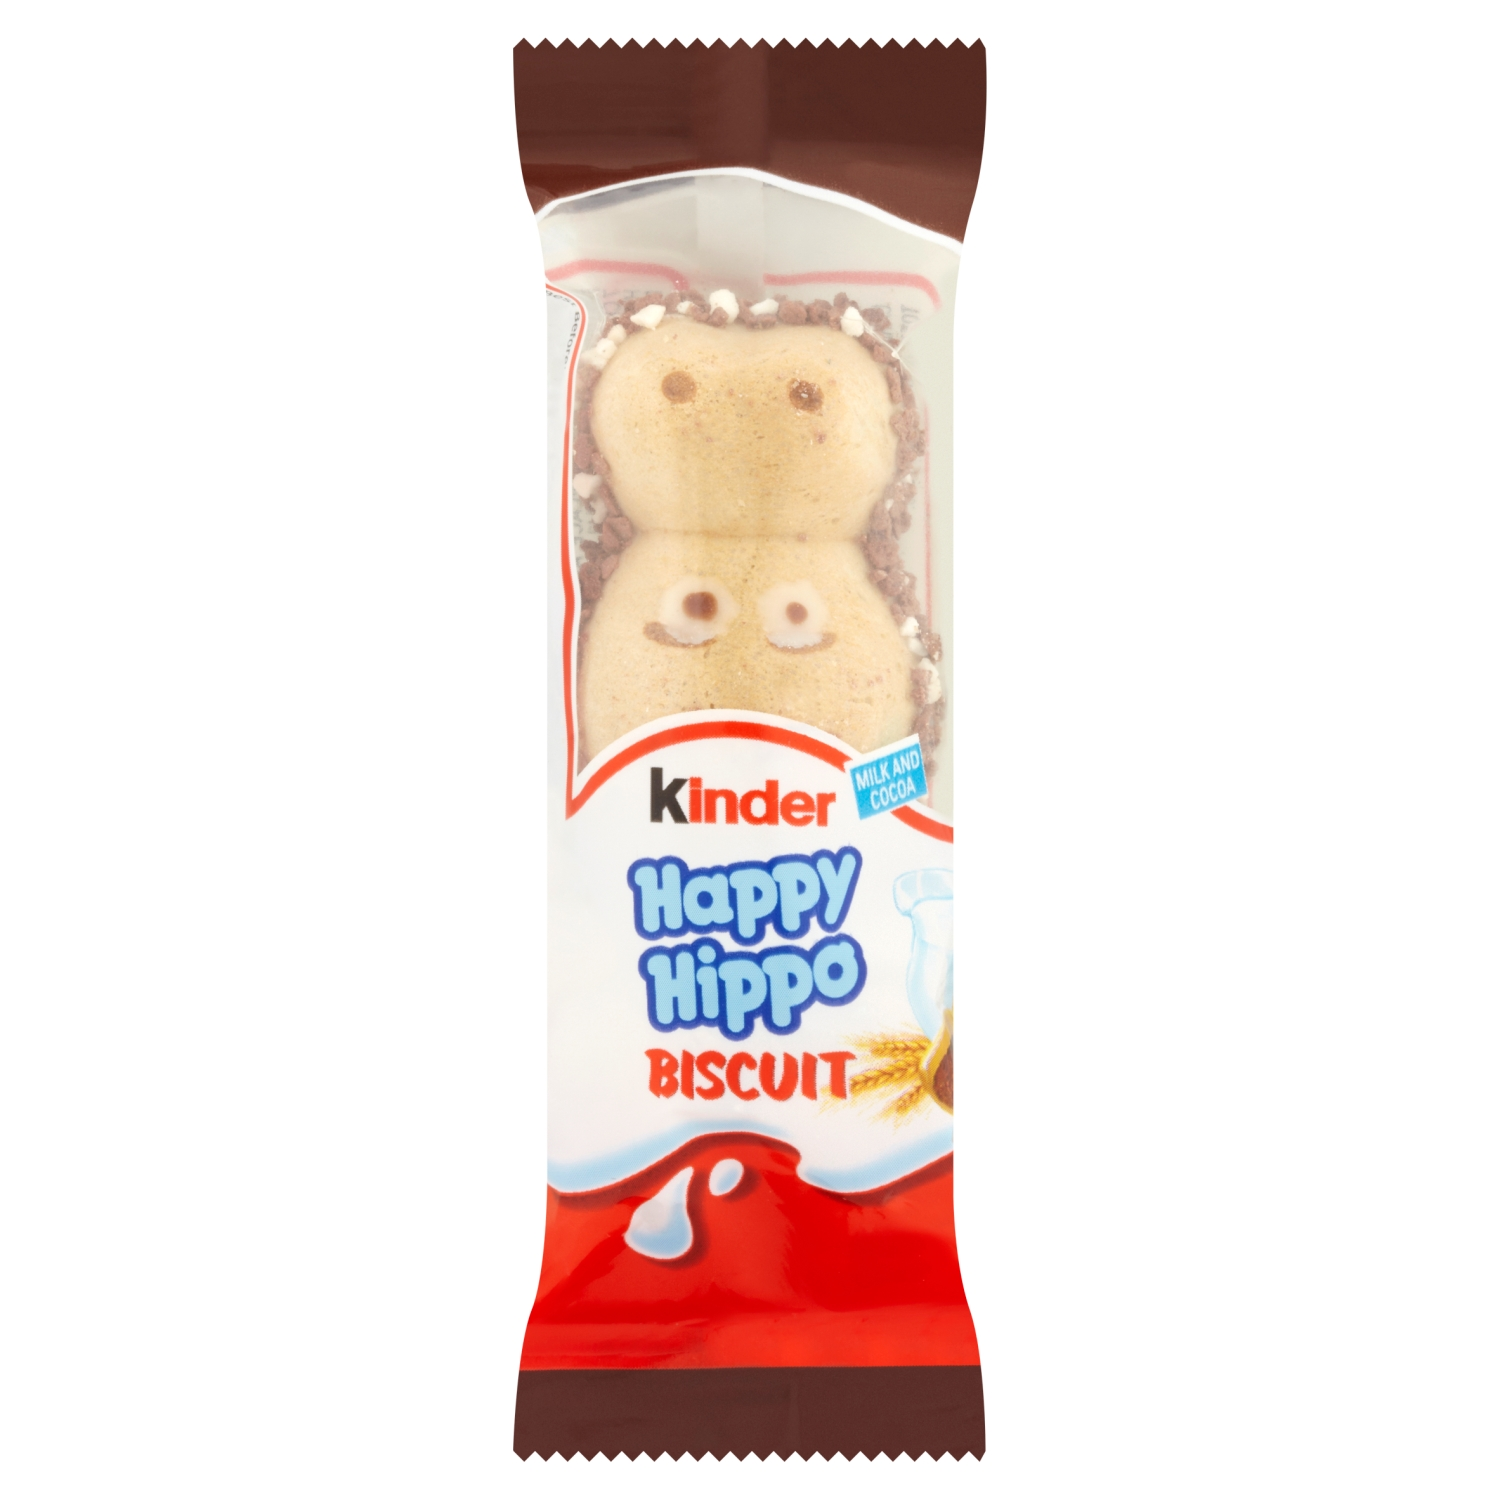 Kinder Happy Hippo Chocolate Biscuit Single Bar 20.7g